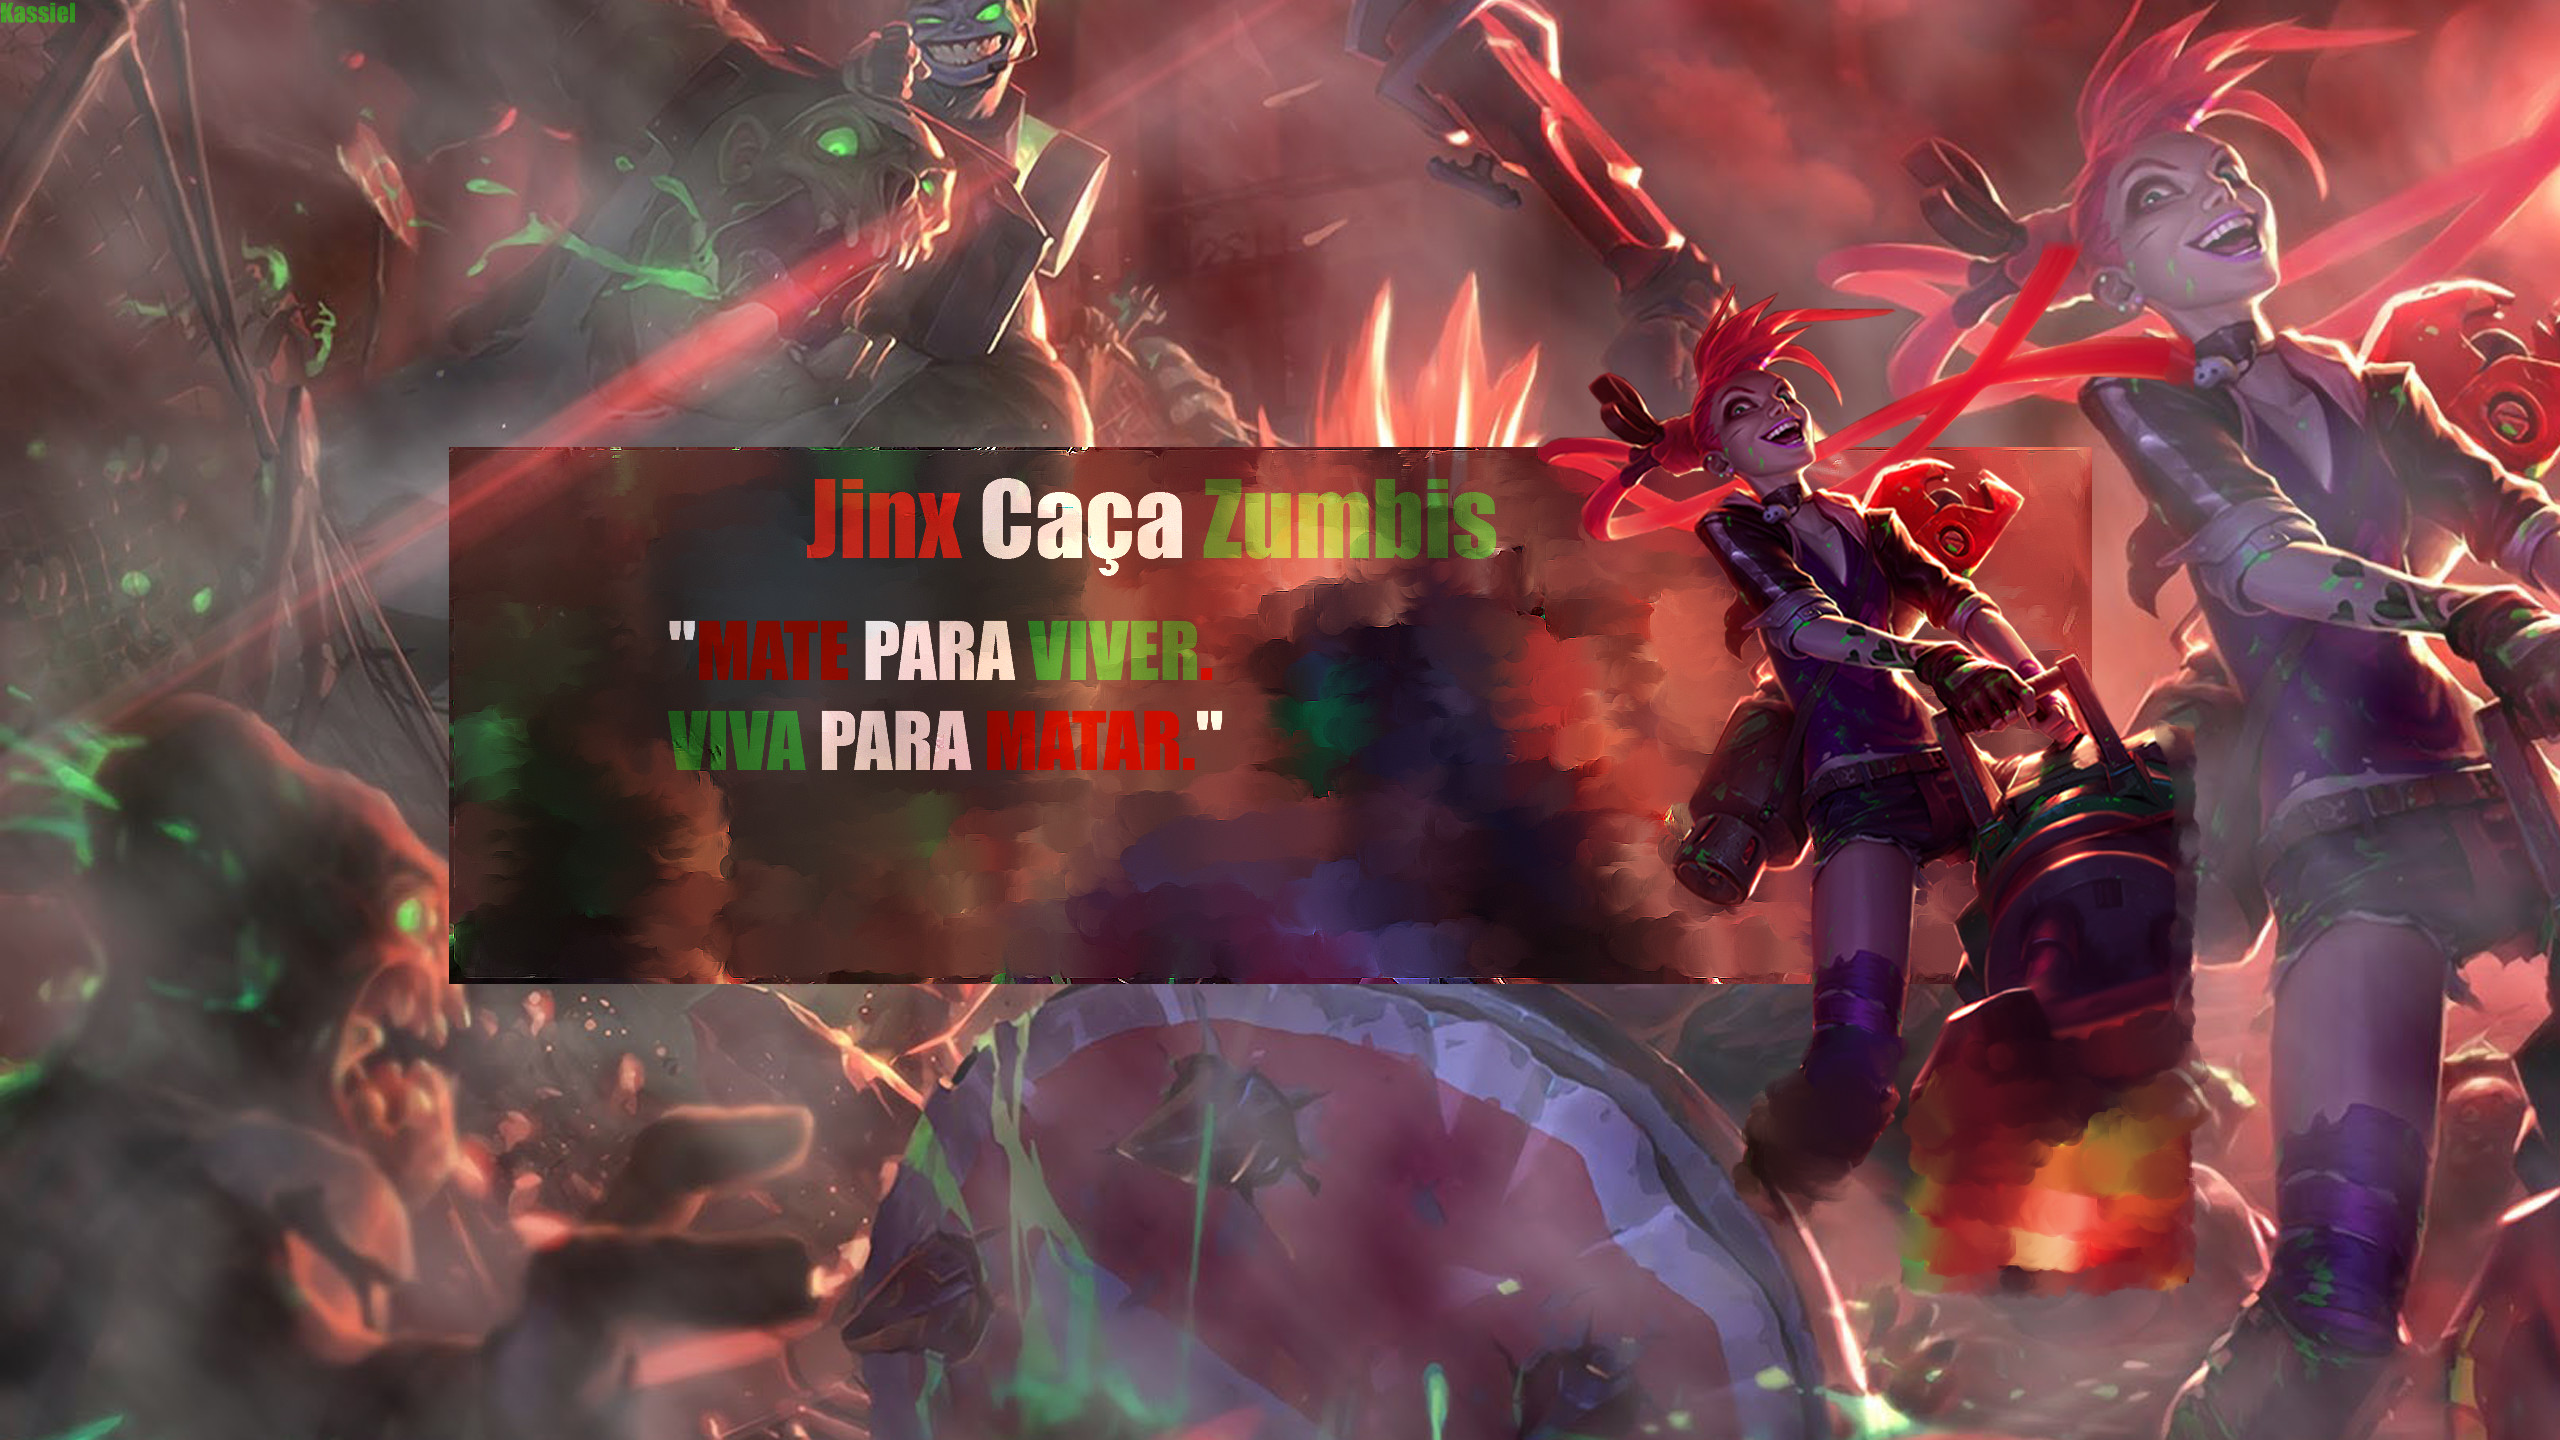 2560x1440 Slayer Jinx Wallpaper - Jinx Caça Zumbi Wallpaper. ""